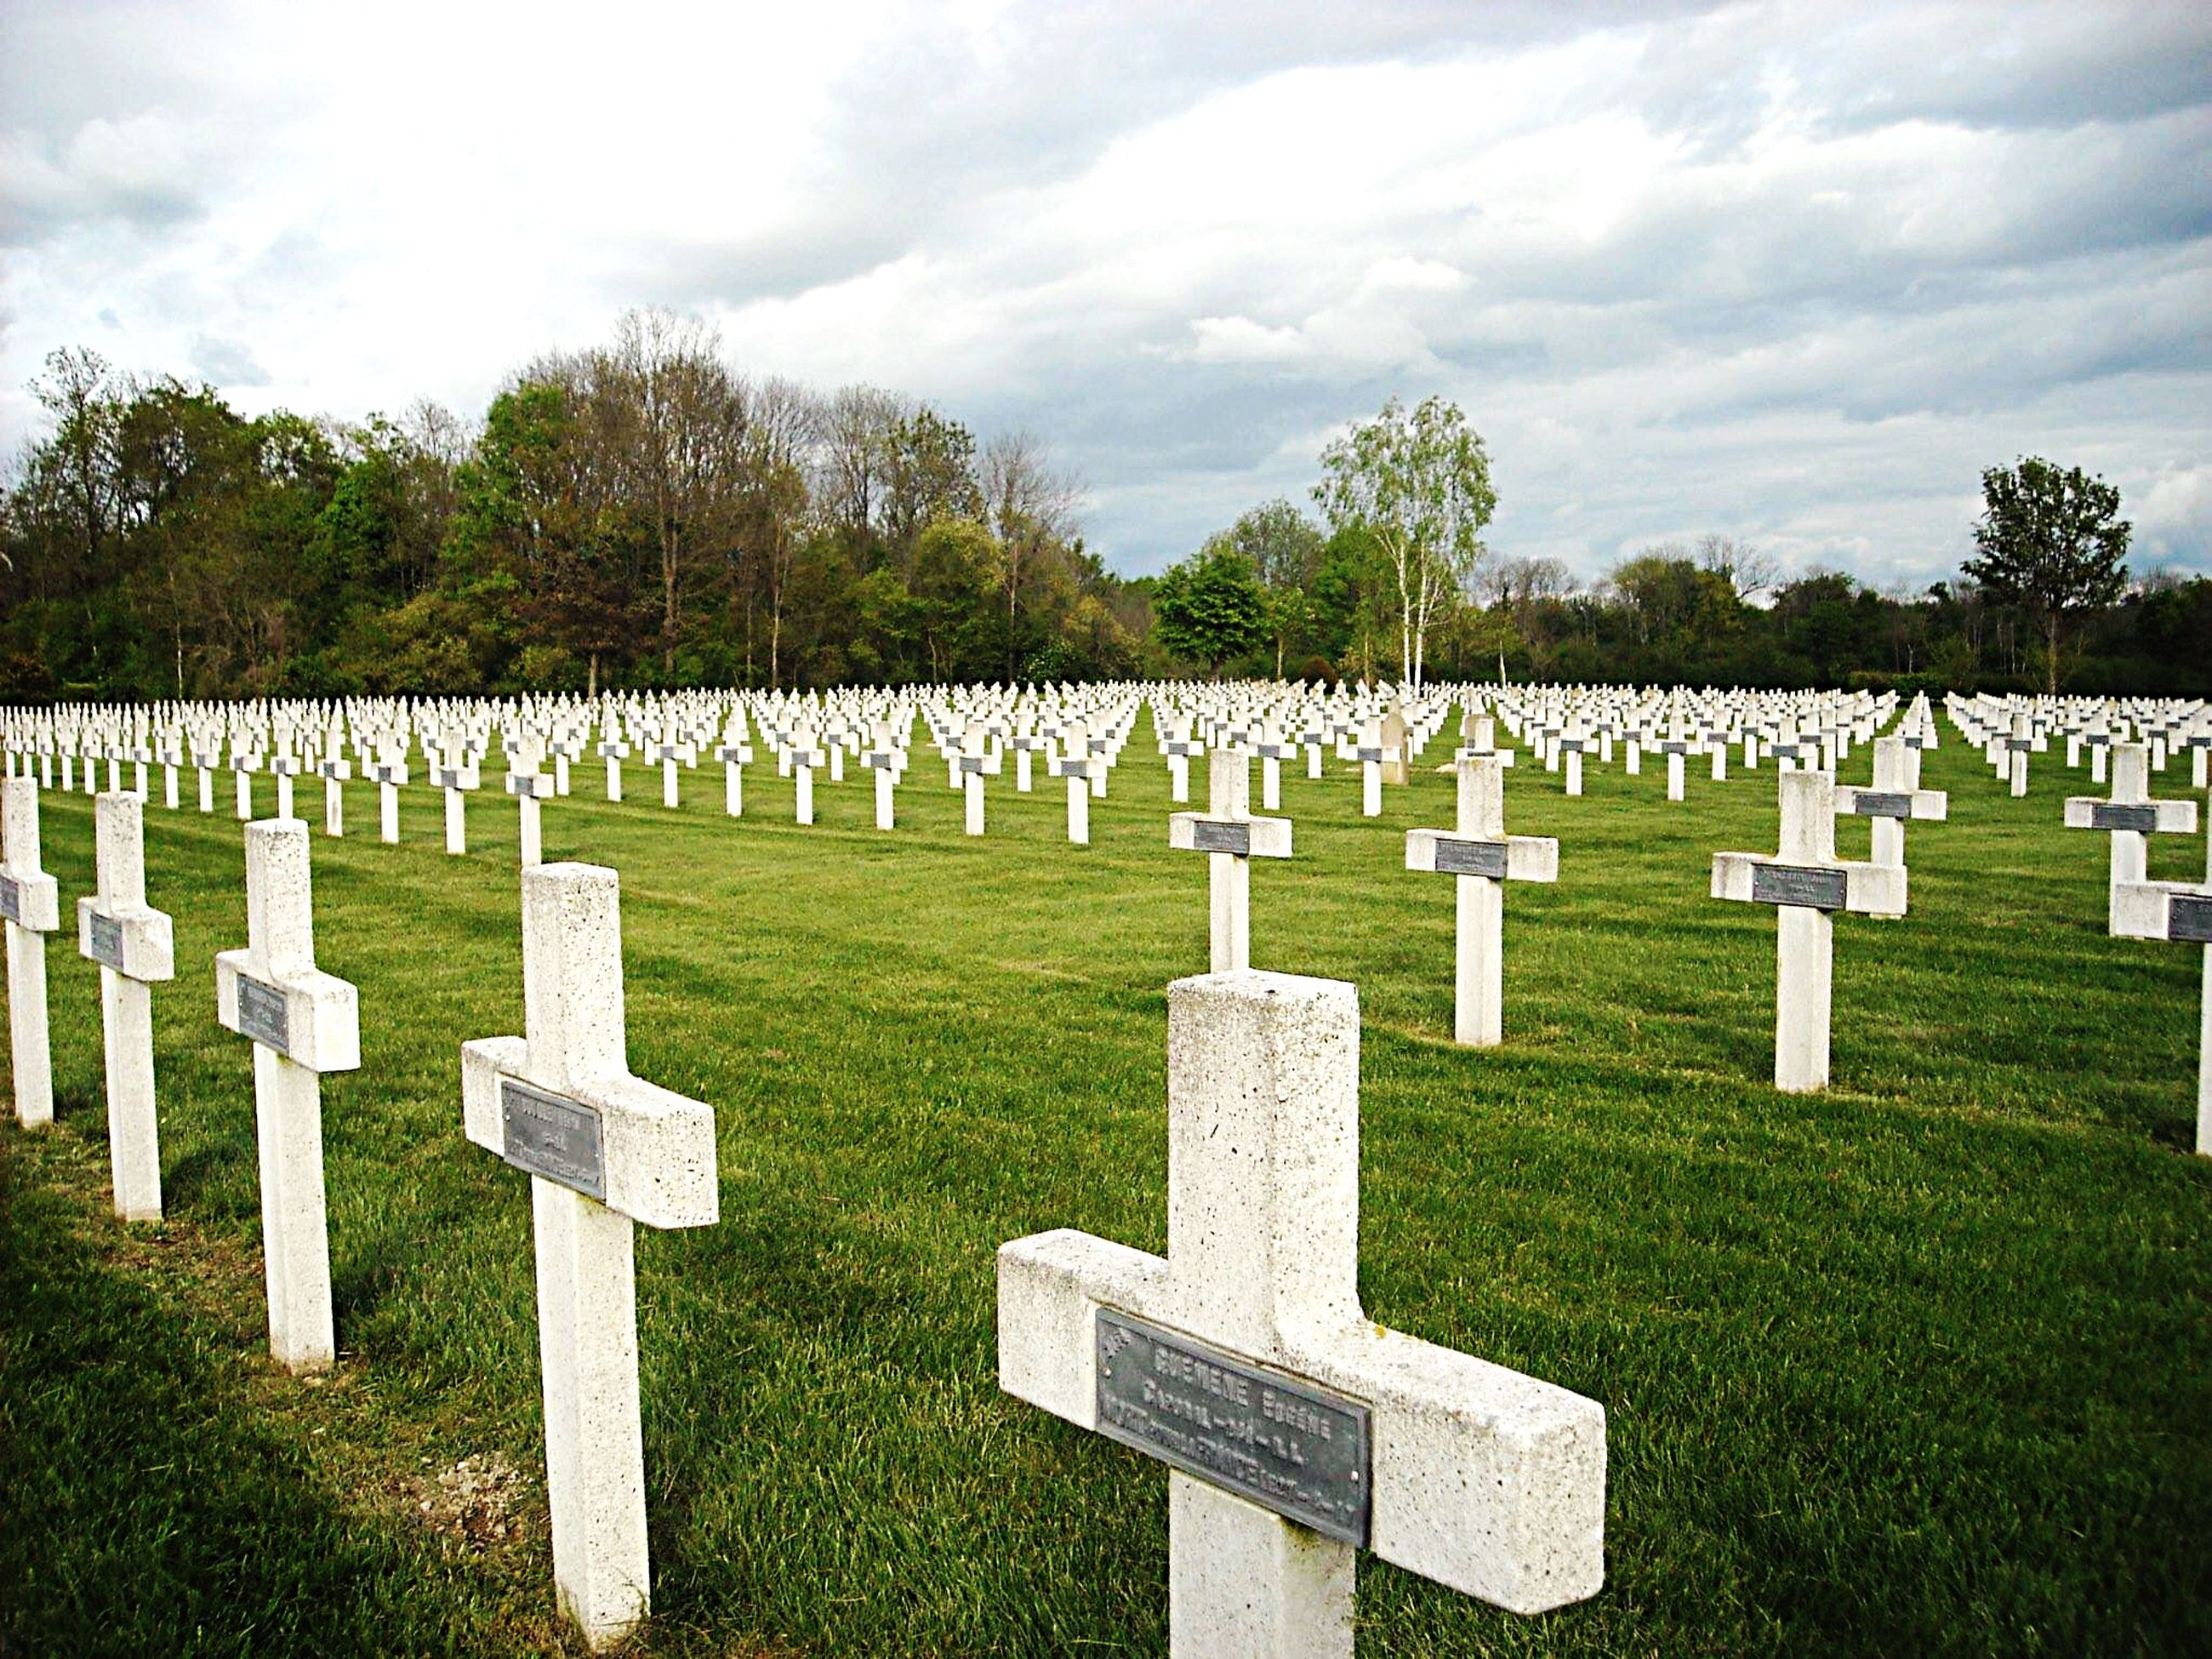 grass, cemetery, tombstone, memorial, tree, death, field, sky, memories, text, art and craft, human representation, green color, park - man made space, place of burial, creativity, art, grave, western script, in a row